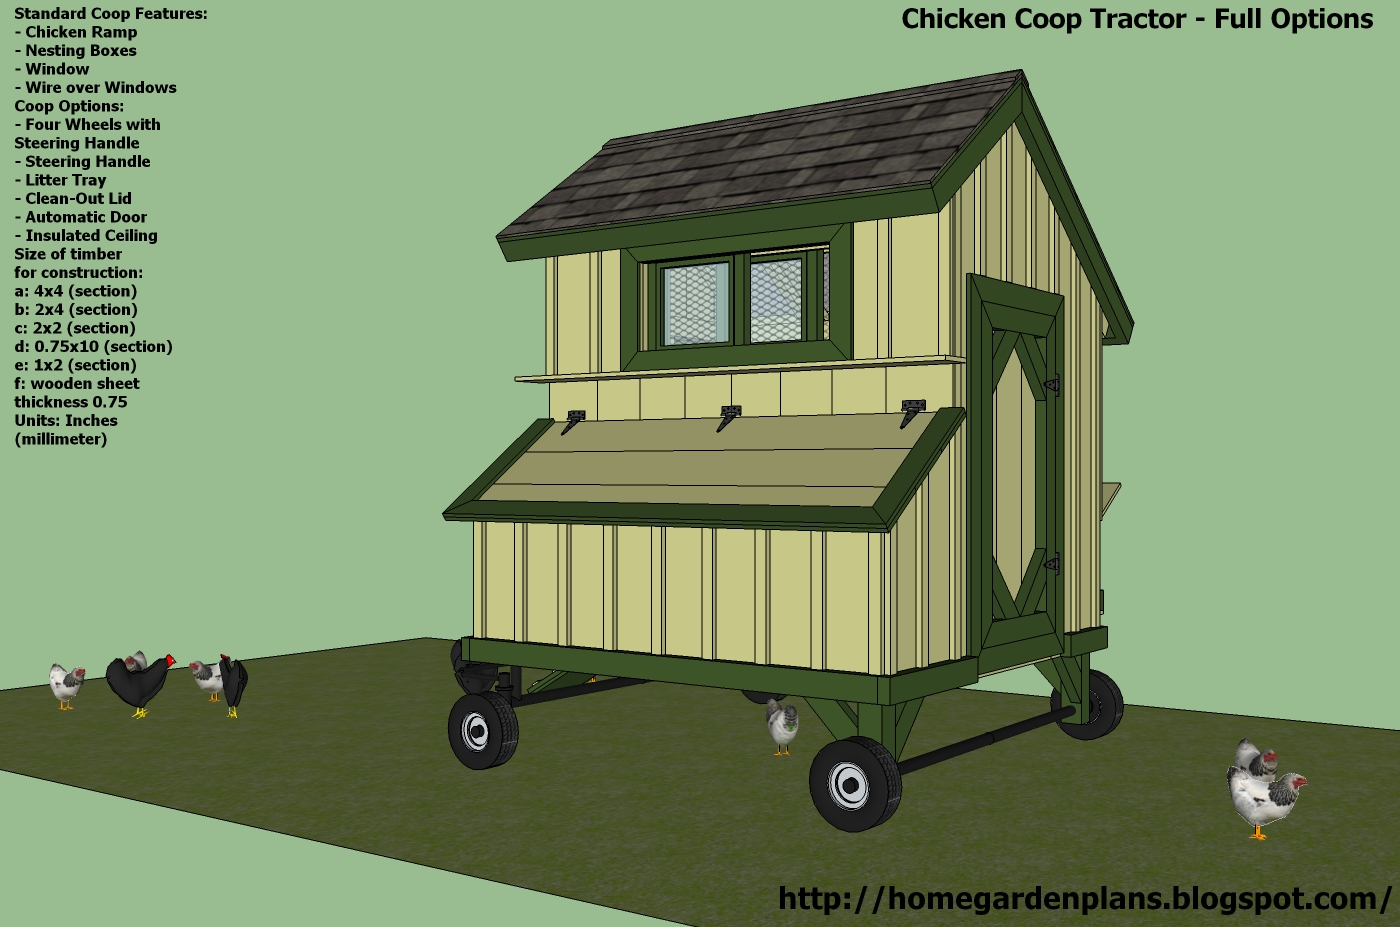 Learning k free chicken coop plans australia for Hen house design plans